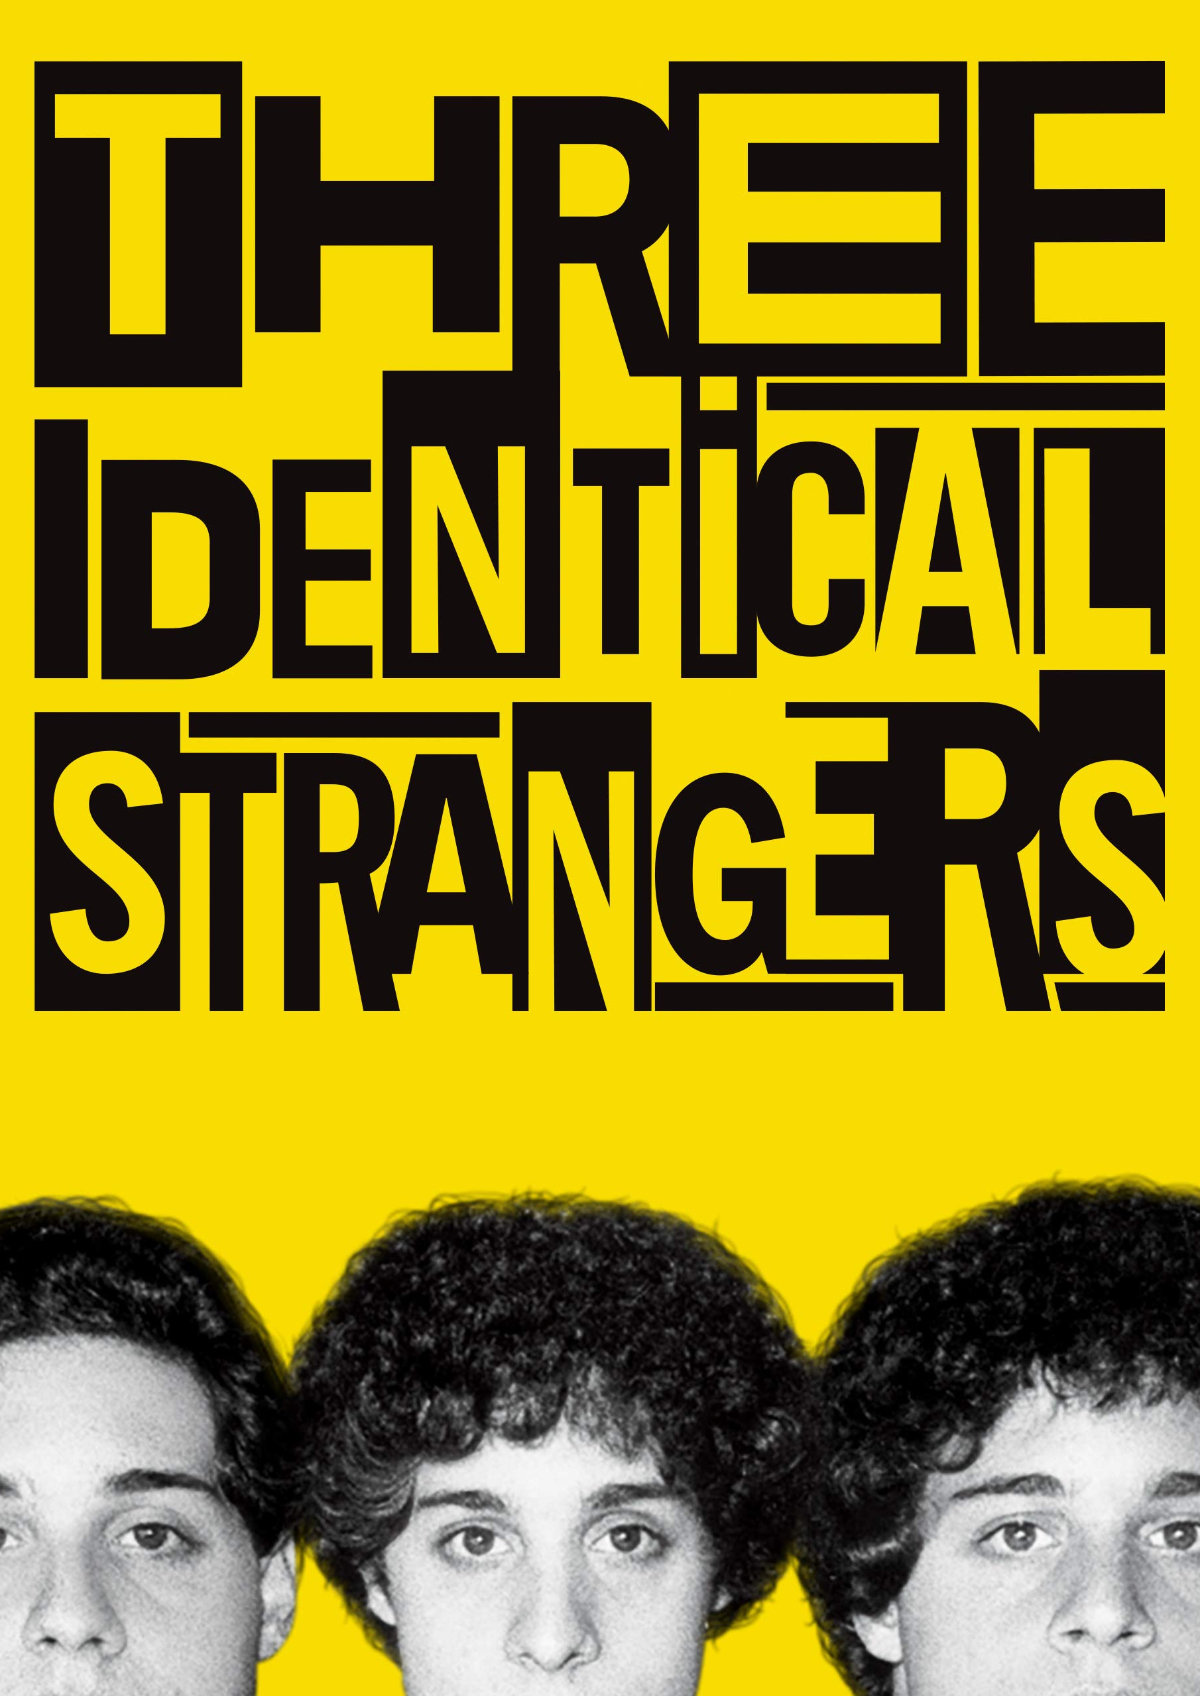 'Three Identical Strangers' movie poster